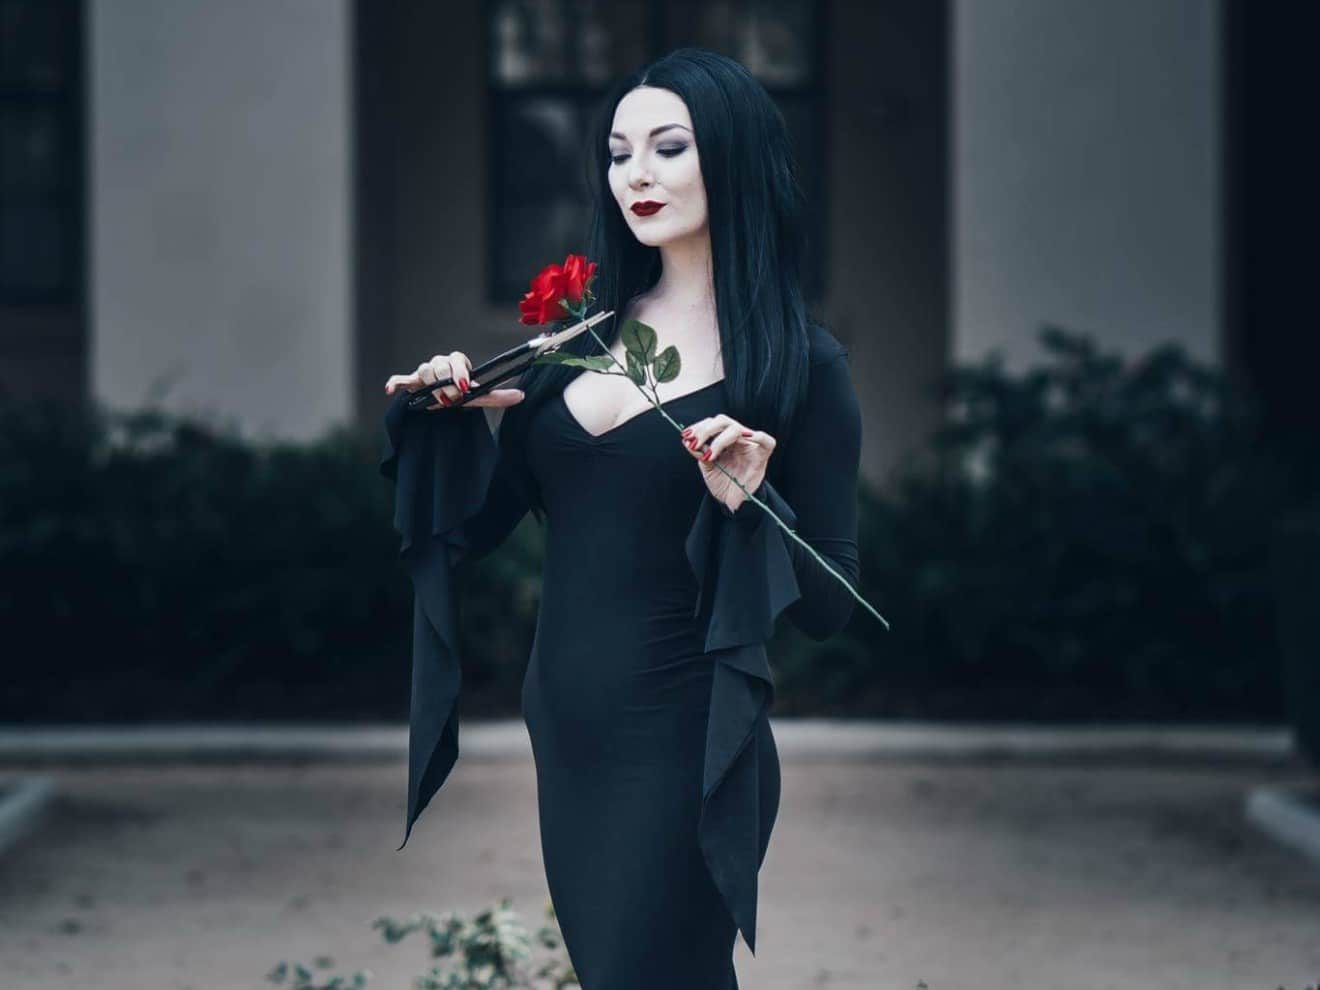 Contemporary Gothic Fashion and Past Essences